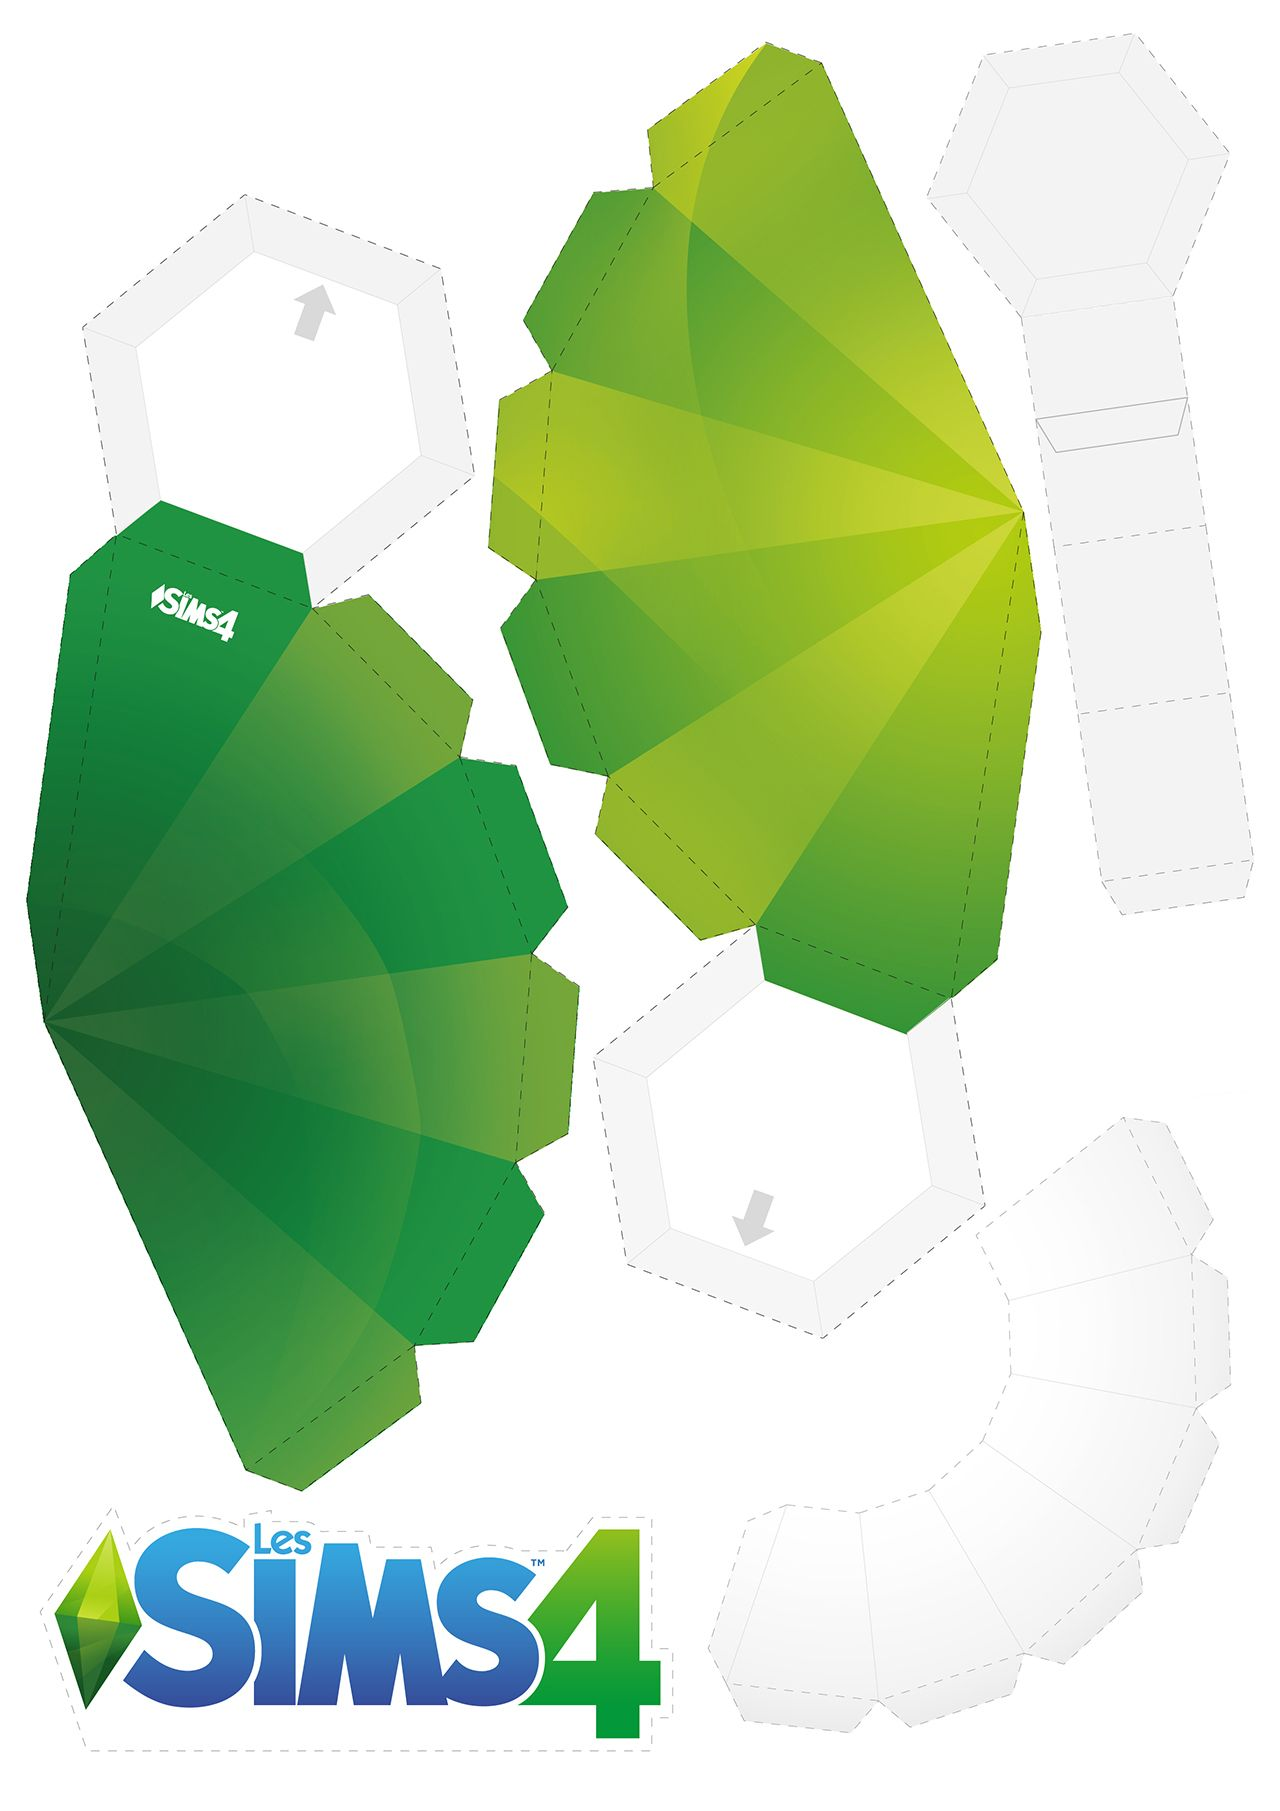 the sims 4 plumbbob arts amp crafts is this cool or am i